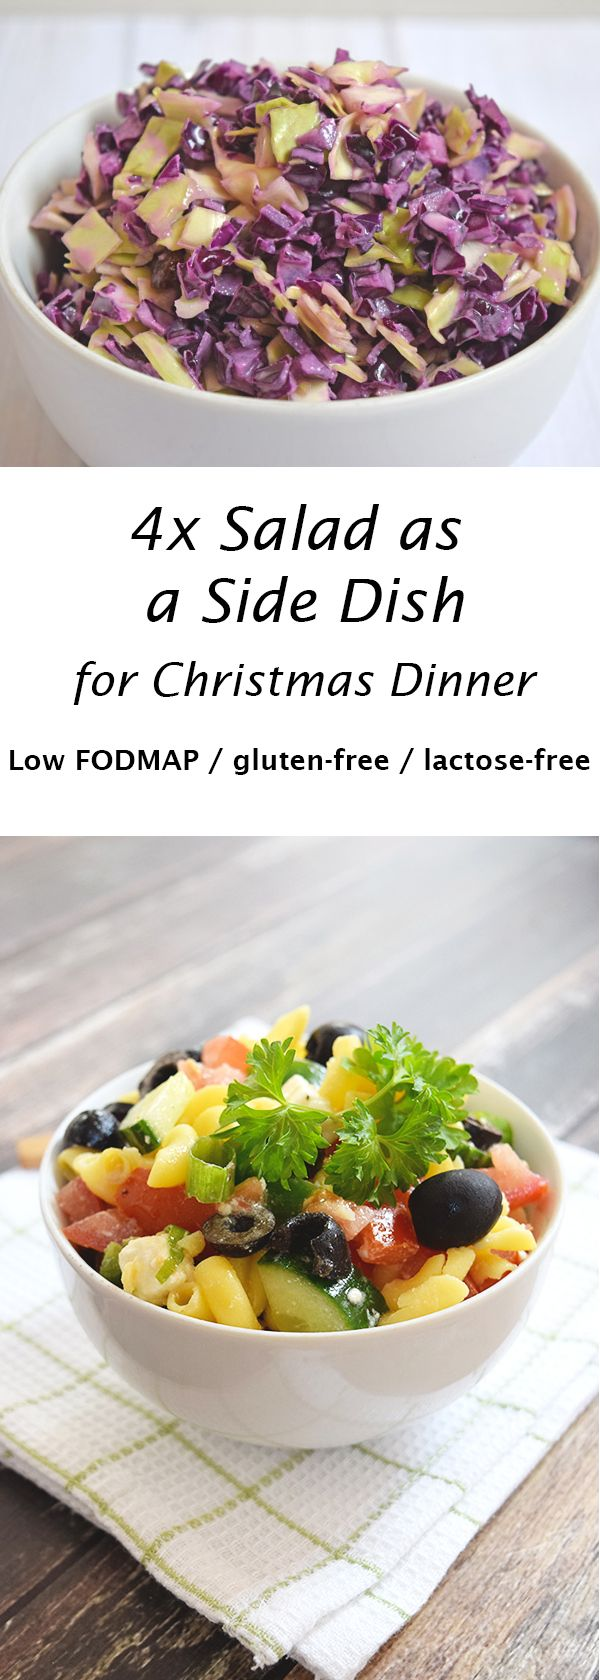 Side Salad - 4x Inspiration for the Christmas Dinner (low FODMAP ...